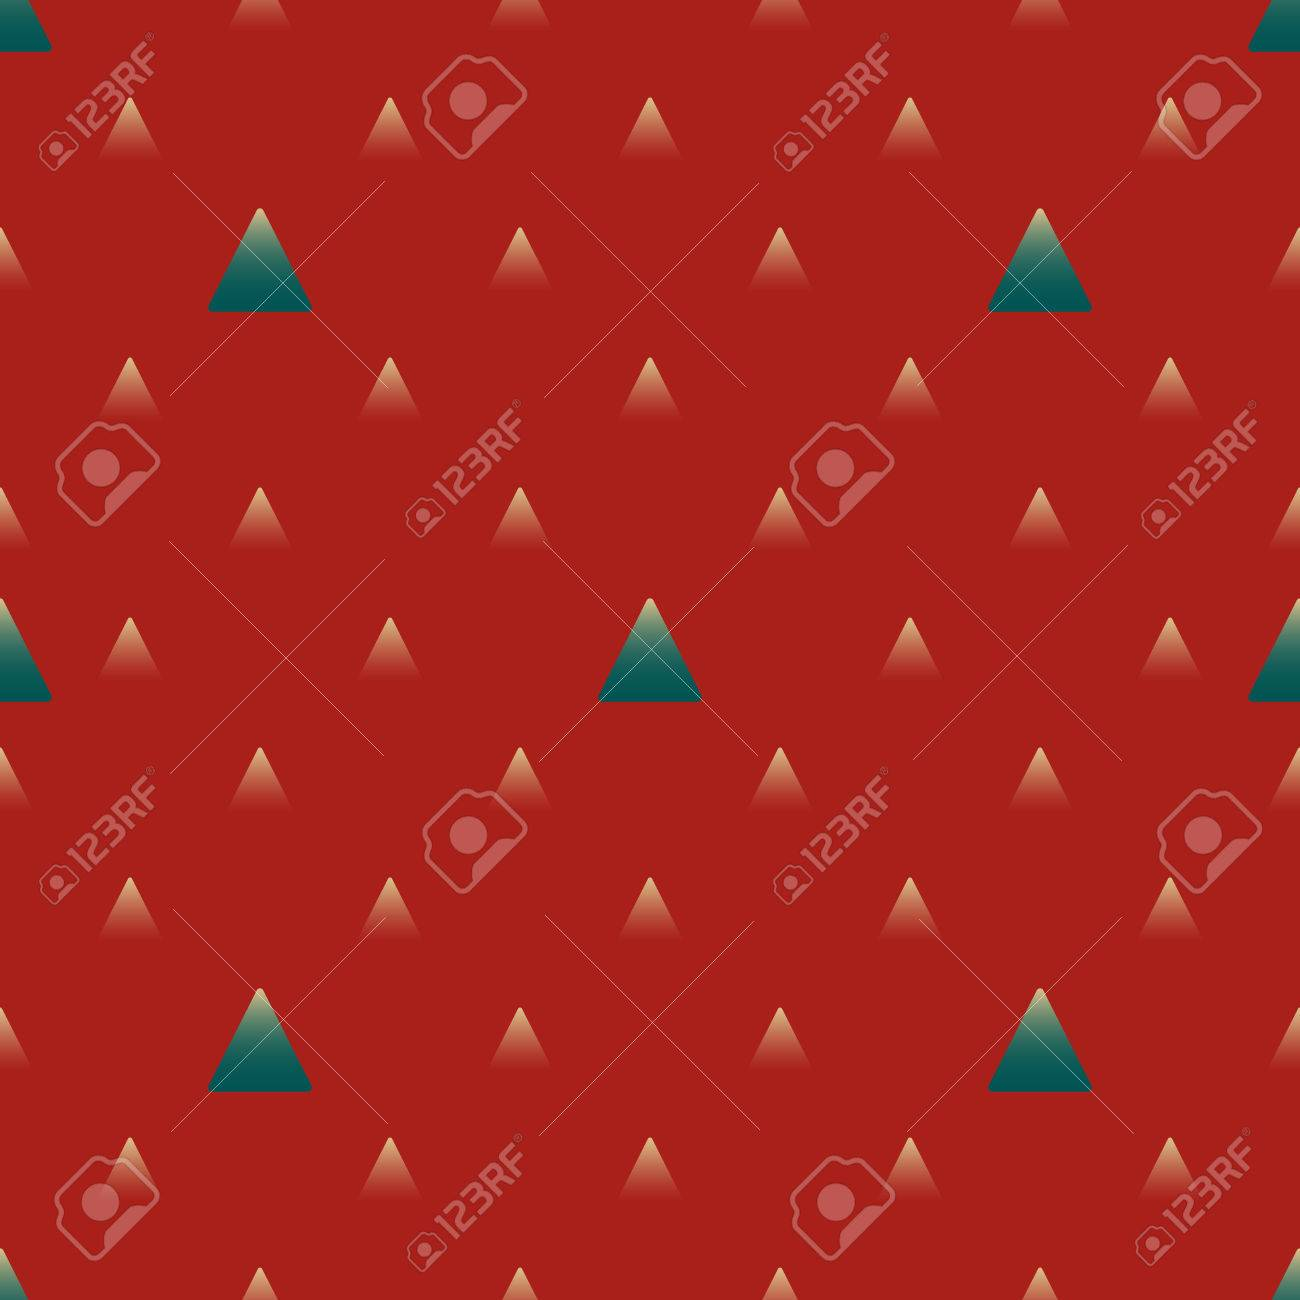 red and turquoise triangles with gradient geometric seamless